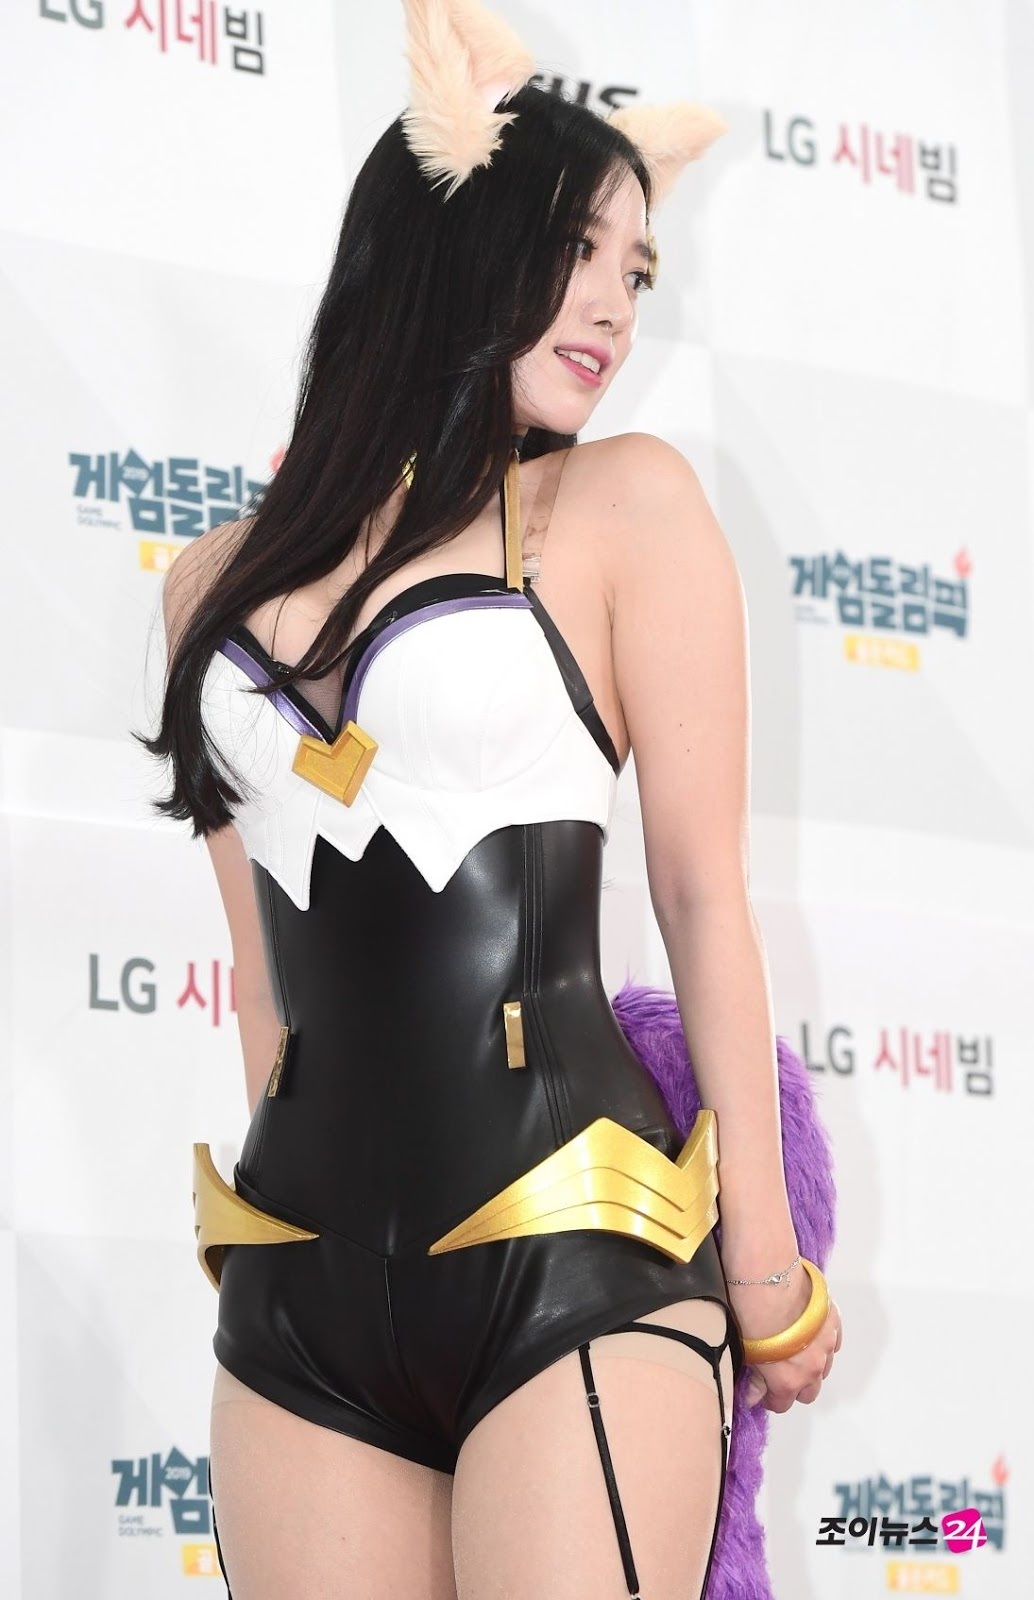 Berry Good Johyun (조현) at OGN's 'Game Dolympic' Red Carpet Event on Monday, 17 June 2019